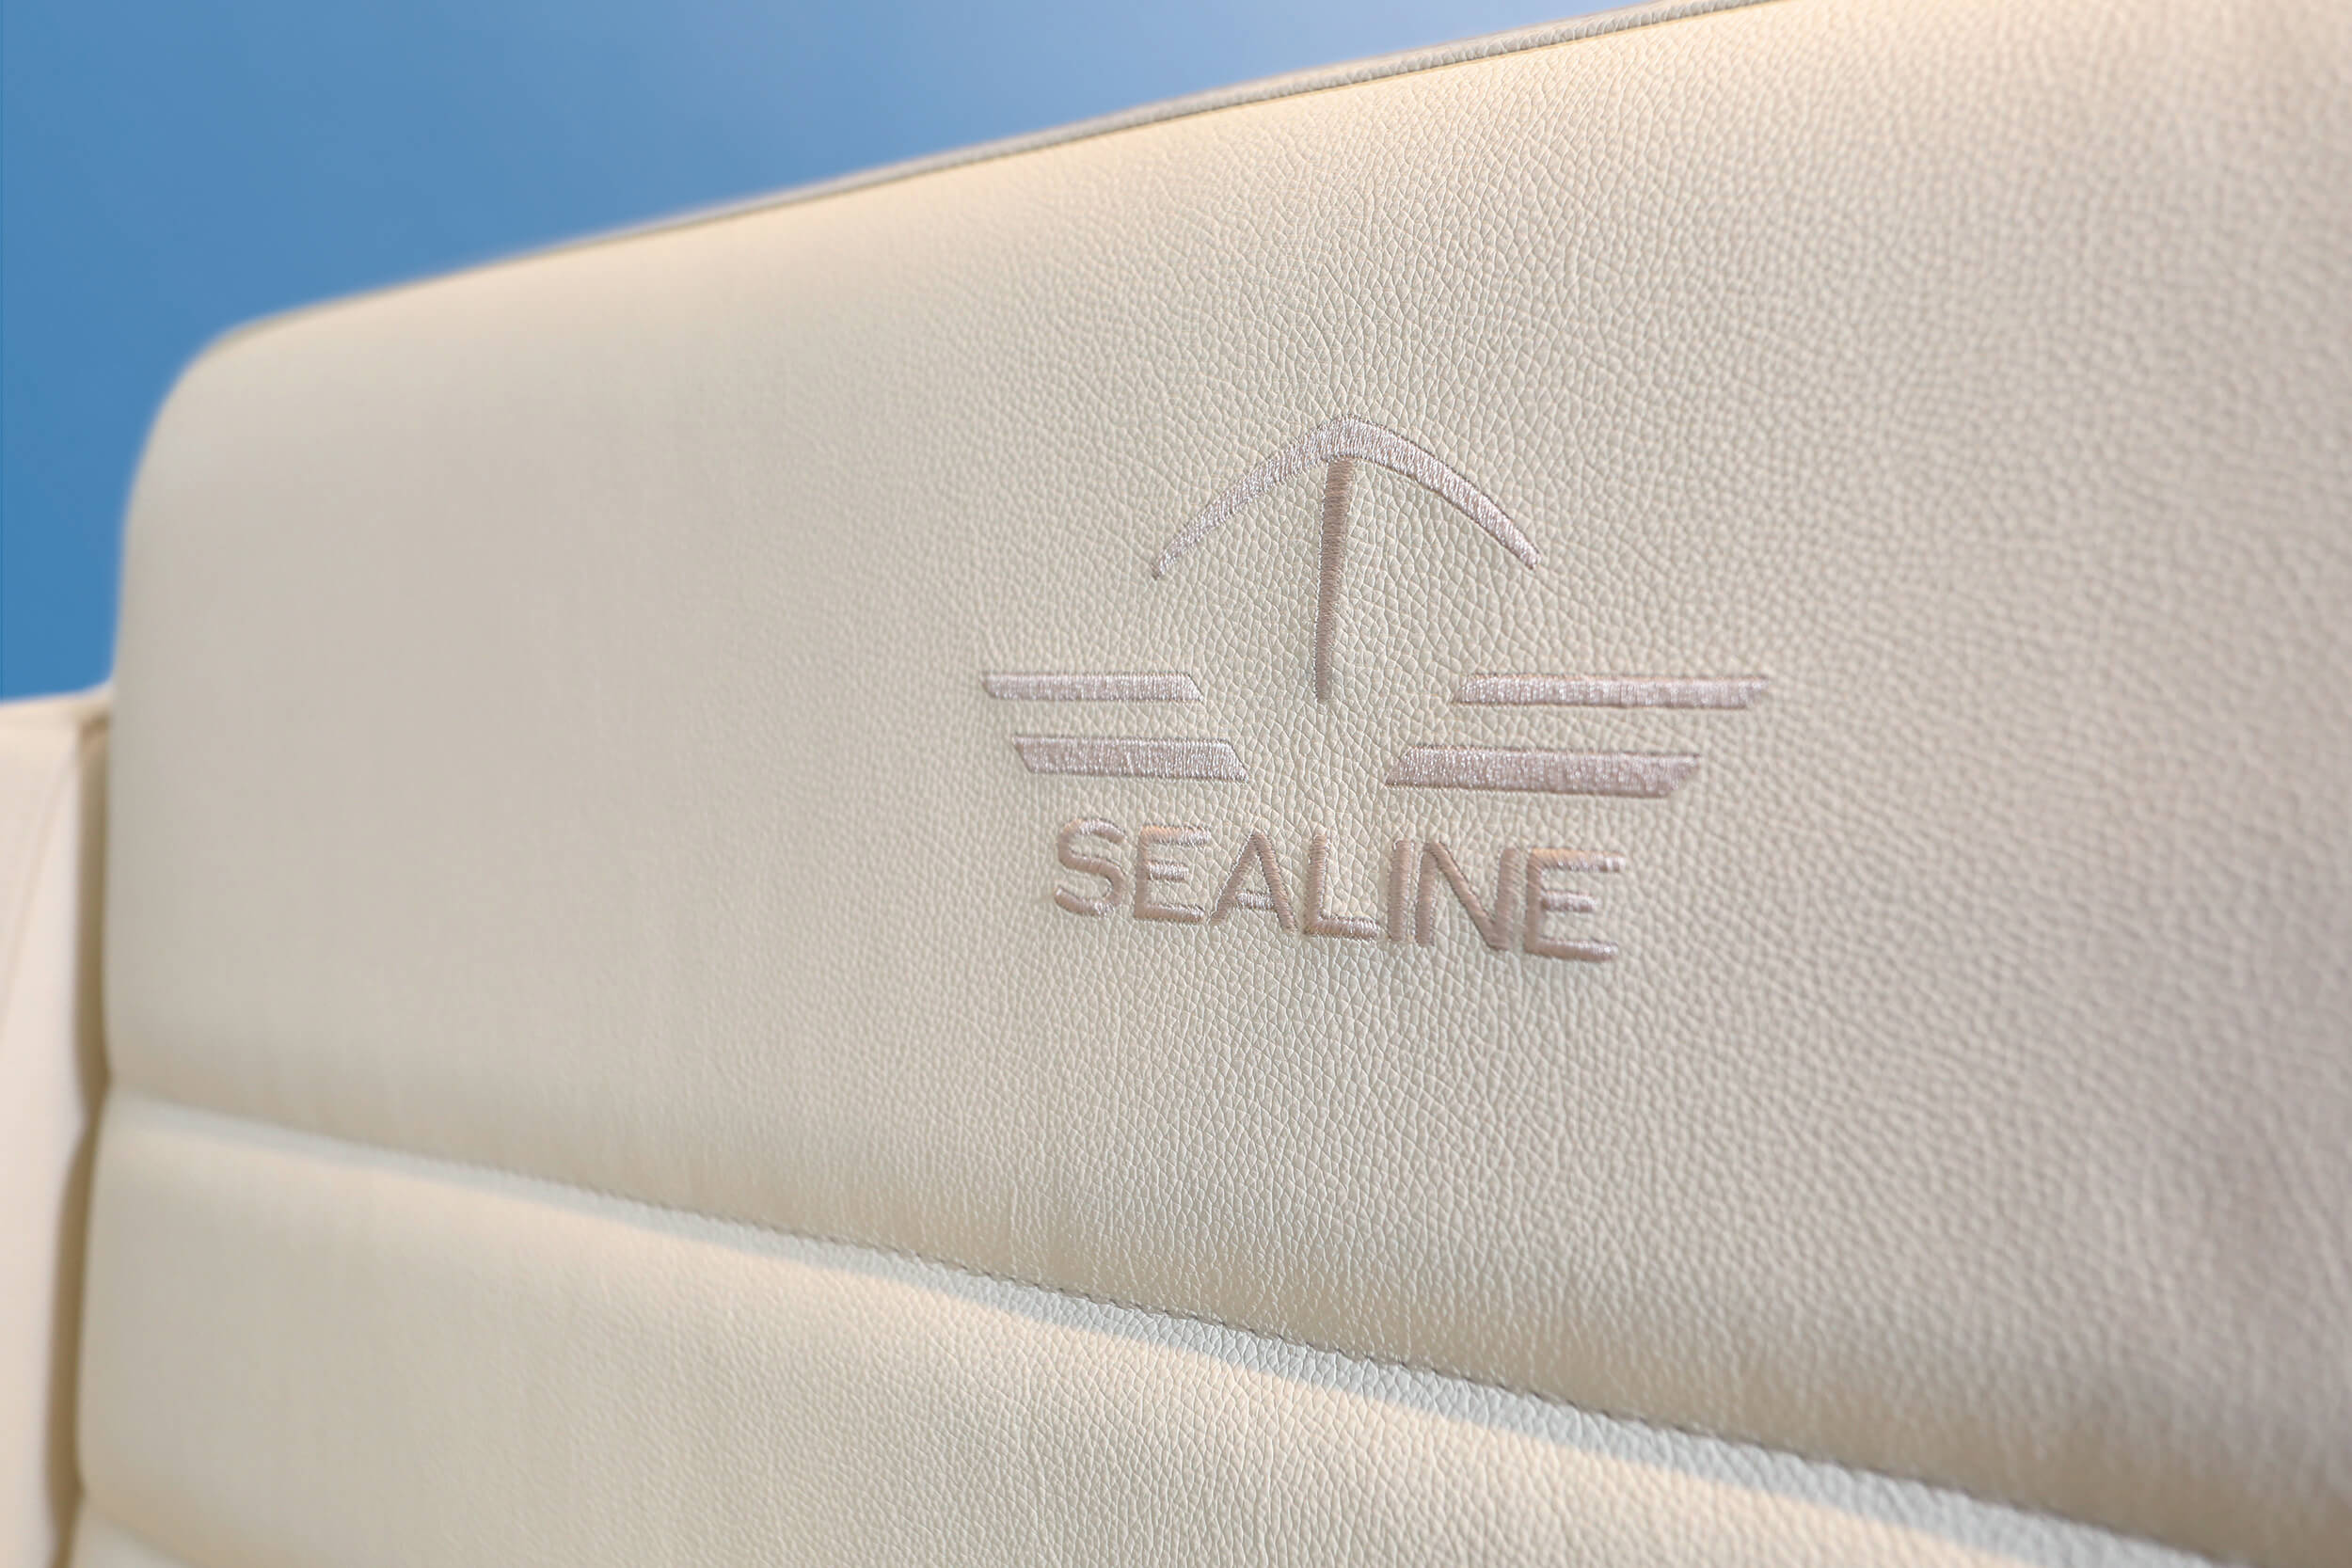 Sealine F430 Interno vista | pilot copilot seats | Sealine